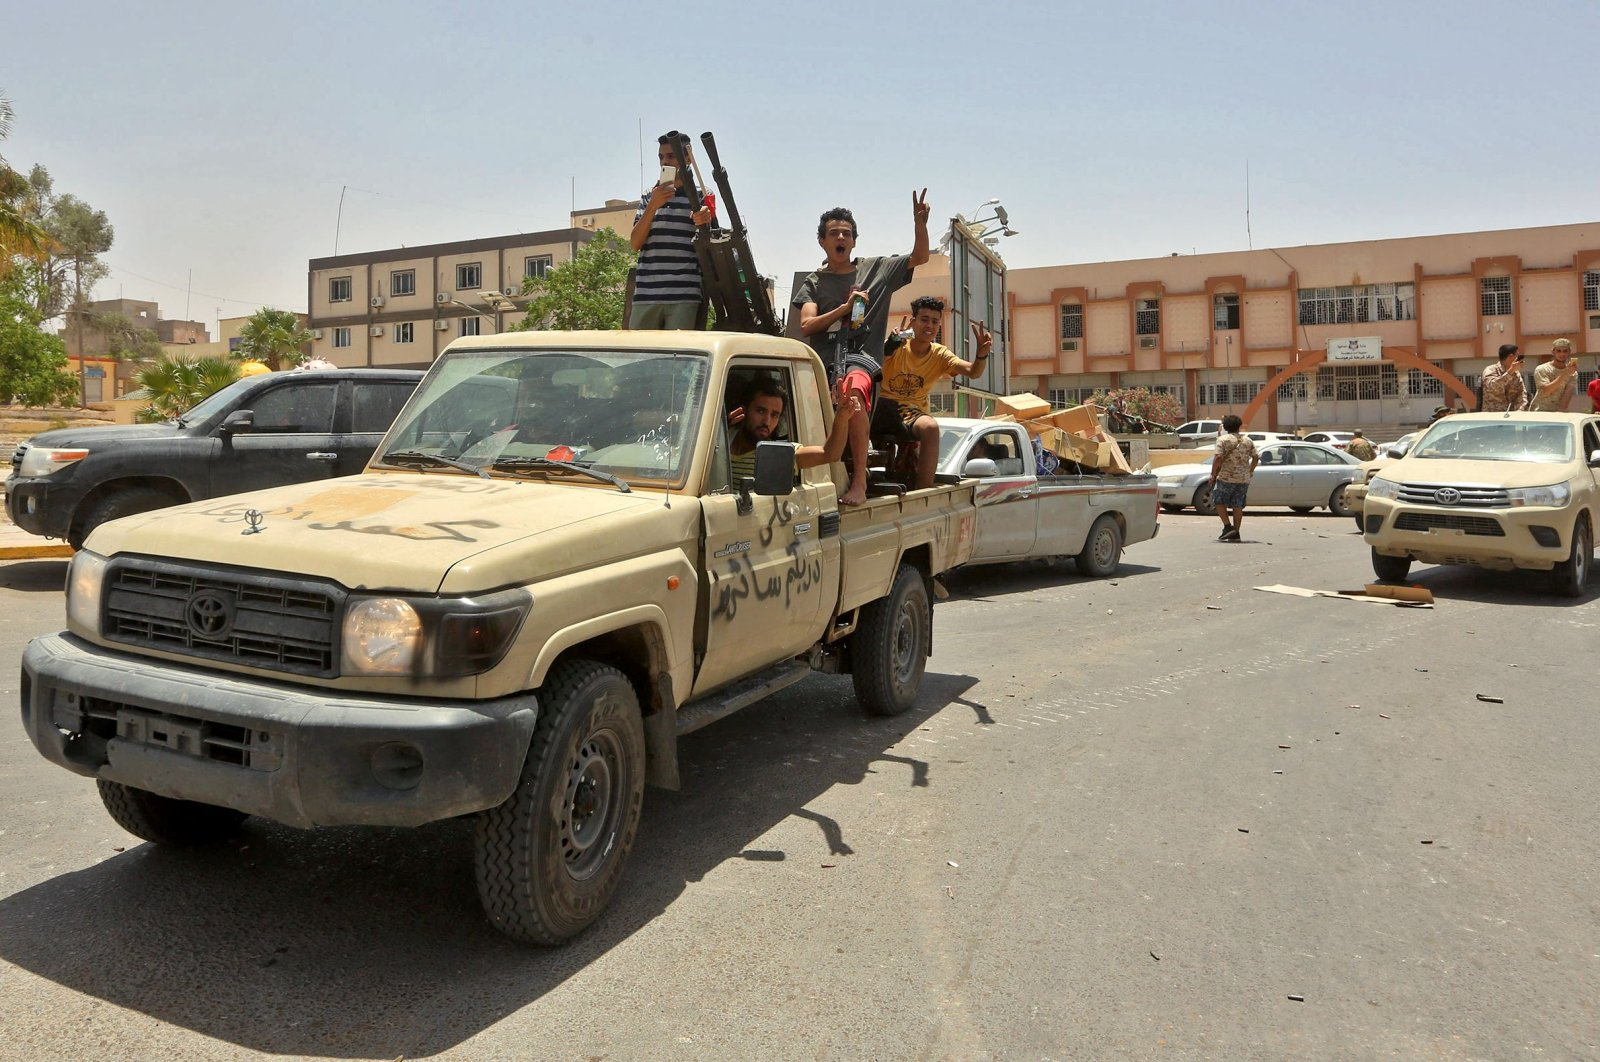 Fighters loyal to Libya's U.N.-recognised Government of National Accord (GNA) pose for a picture in the back of a technical (pickup truck mounted with turret) in the town of Tarhuna, about 65 kilometers southeast of the capital Tripoli, June 5, 2020. (AFP Photo)